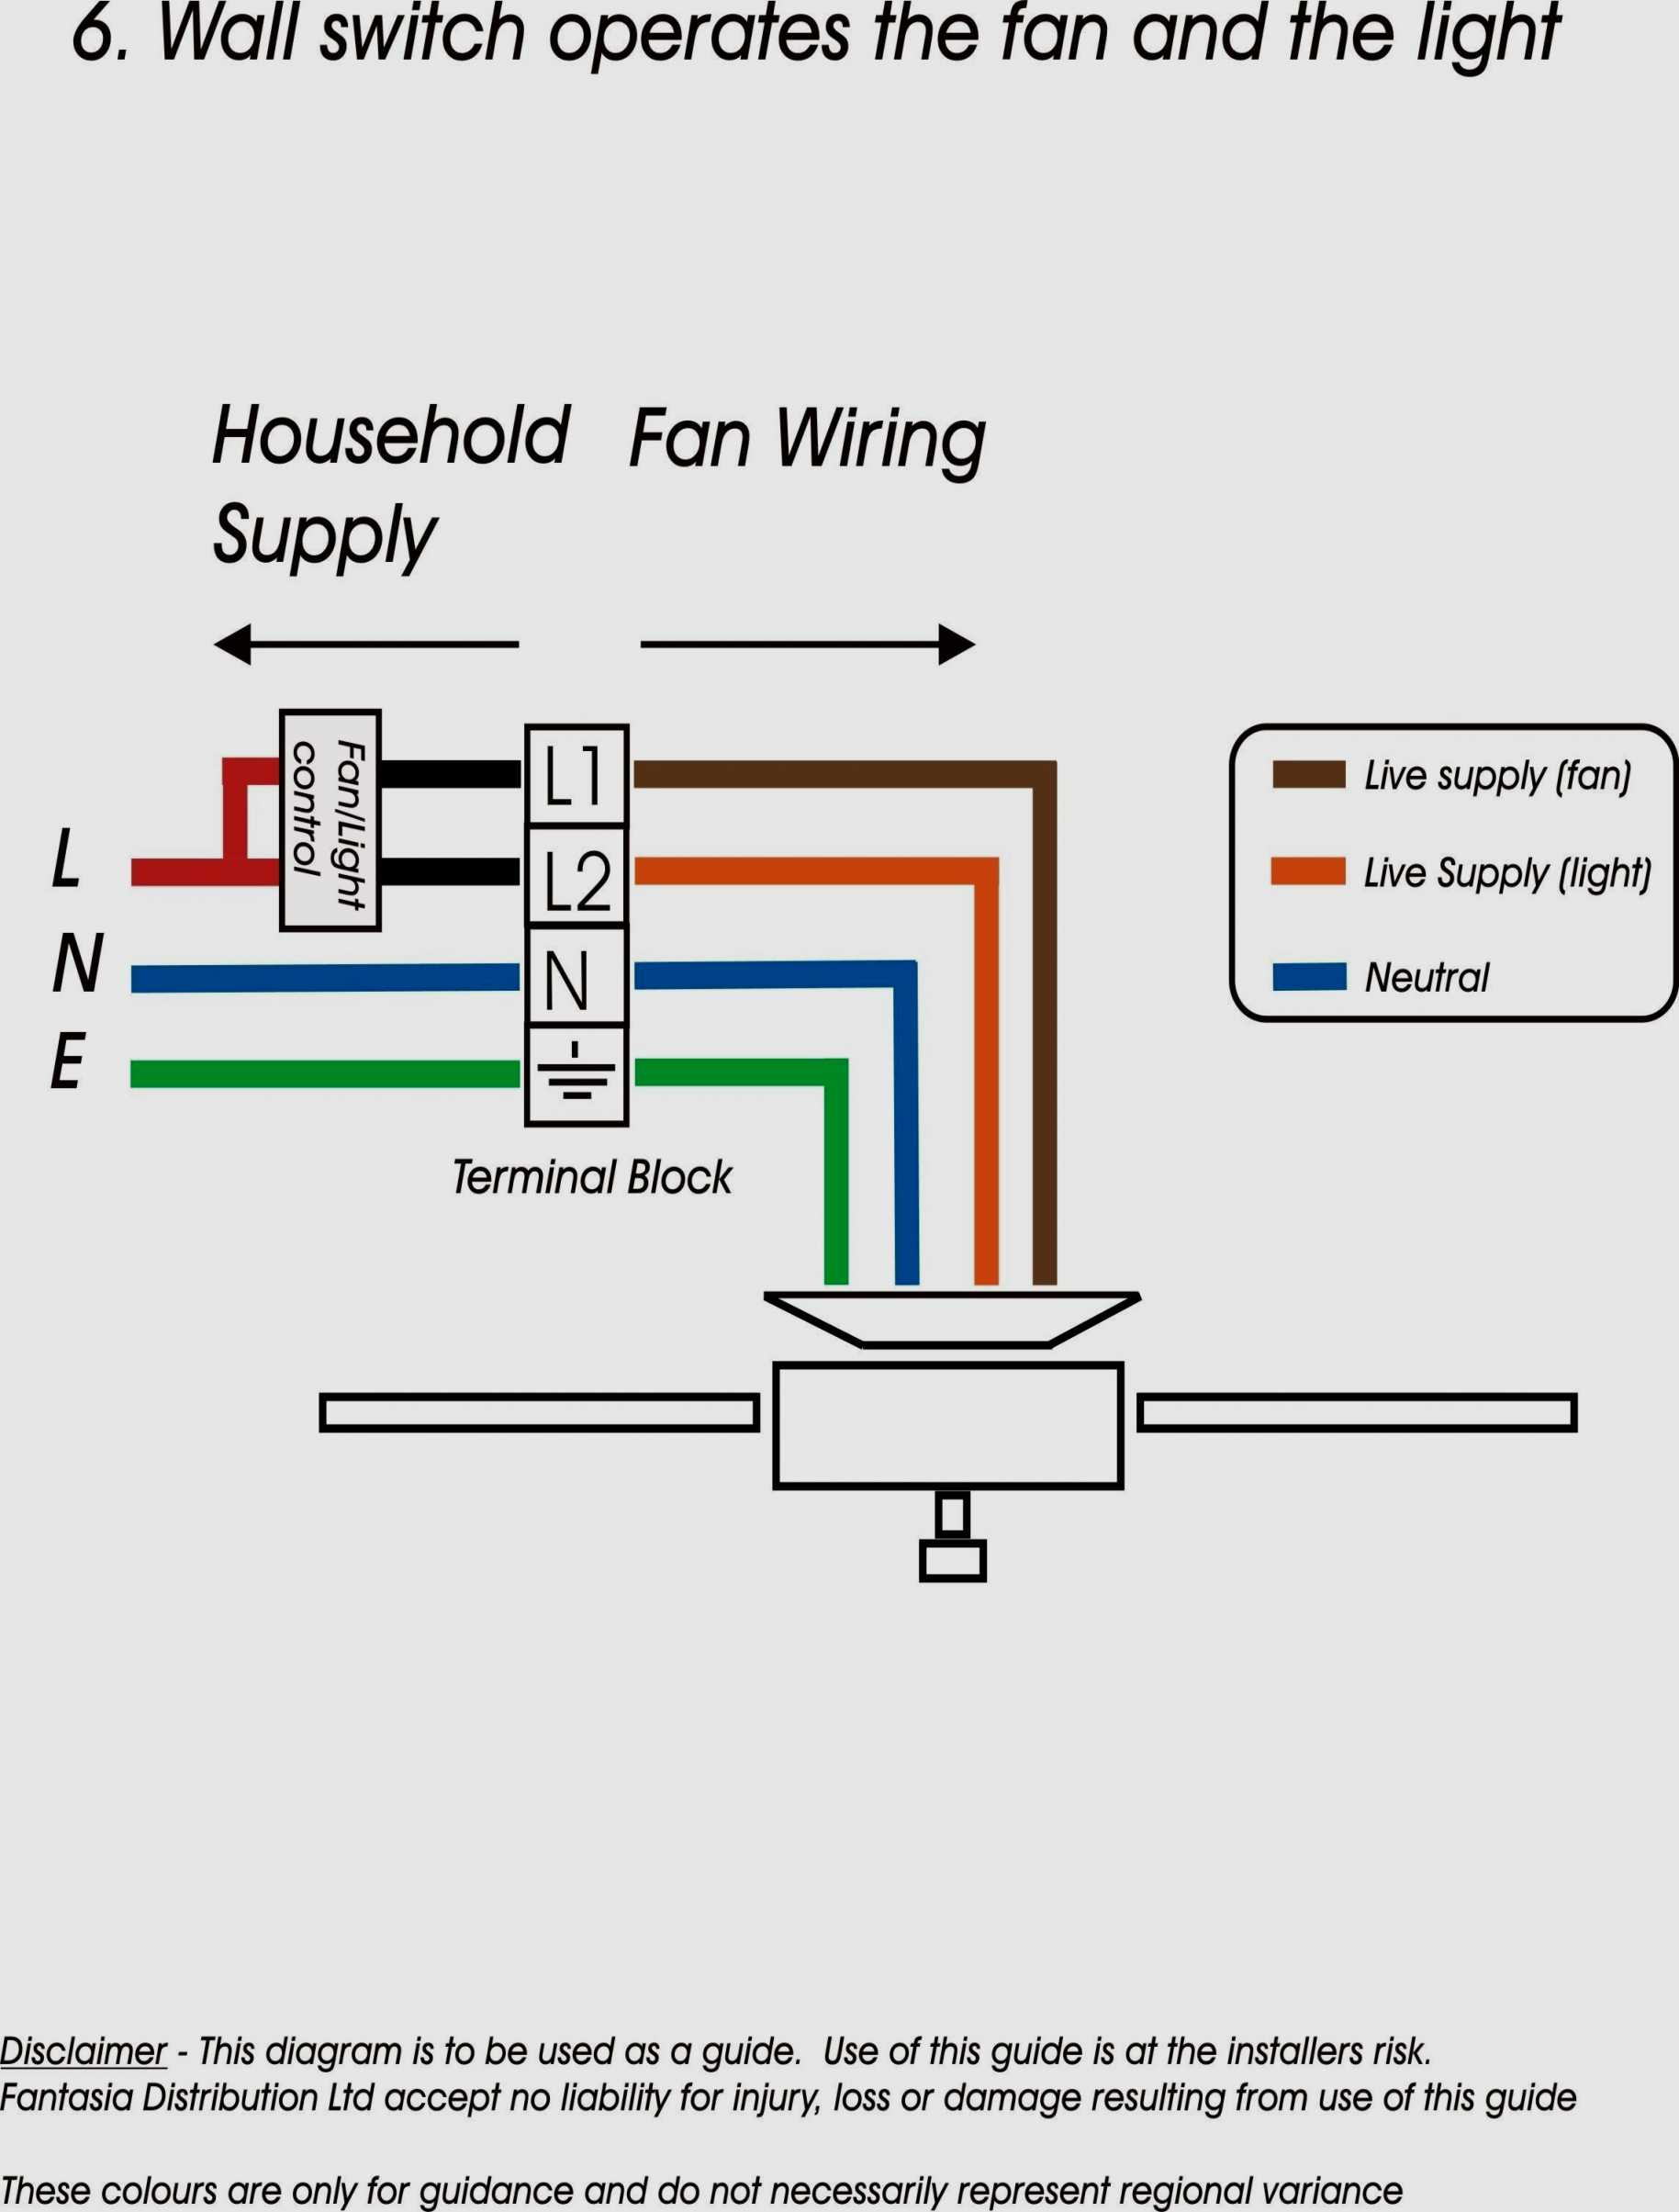 Home Fan Wiring Diagram | Best Wiring Library - Ceiling Fan Internal Wiring Diagram